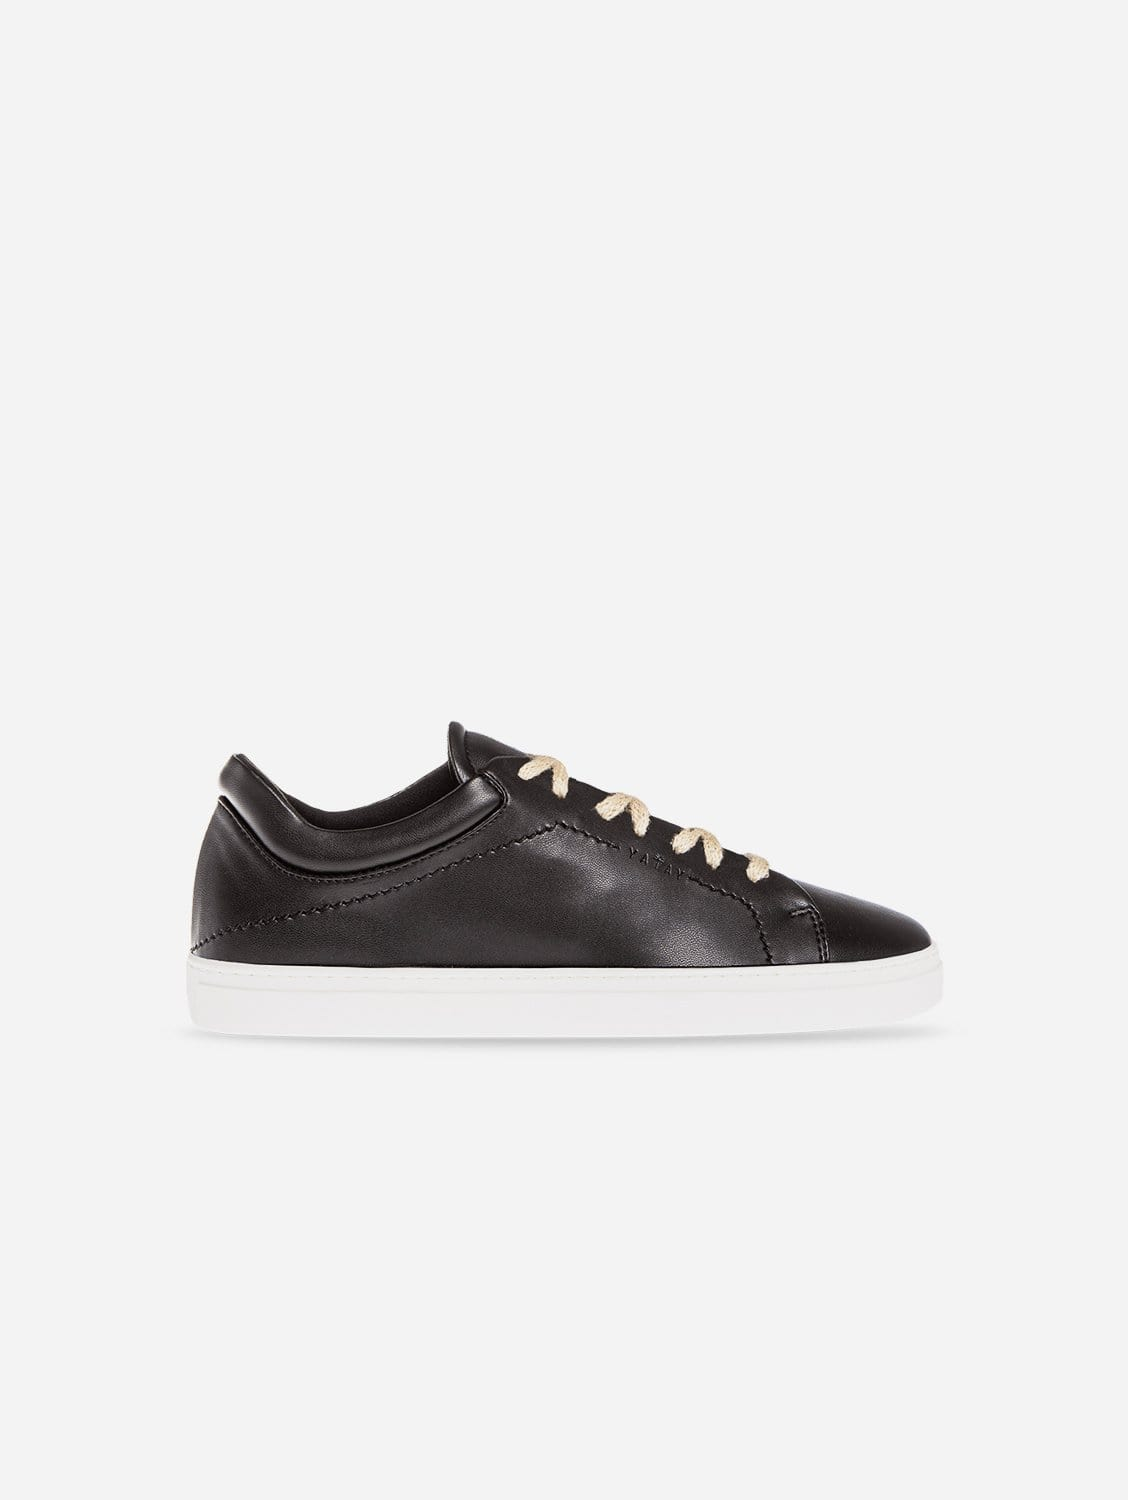 Neven Vegan Leather Low-Top Trainer | Slate Black & White Sole